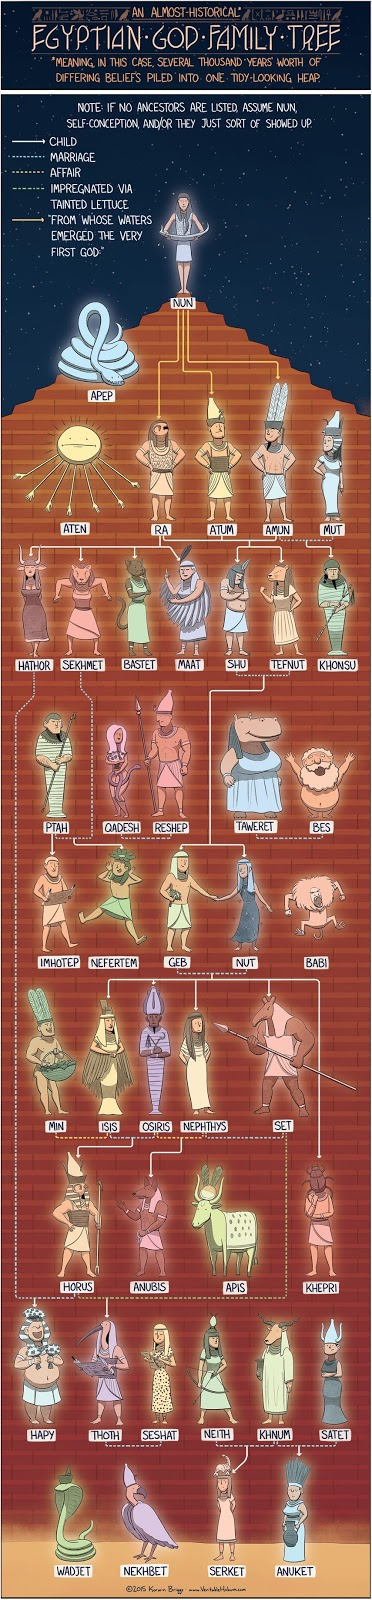 http://www.veritablehokum.com/comic/the-egyptian-god-family-tree/